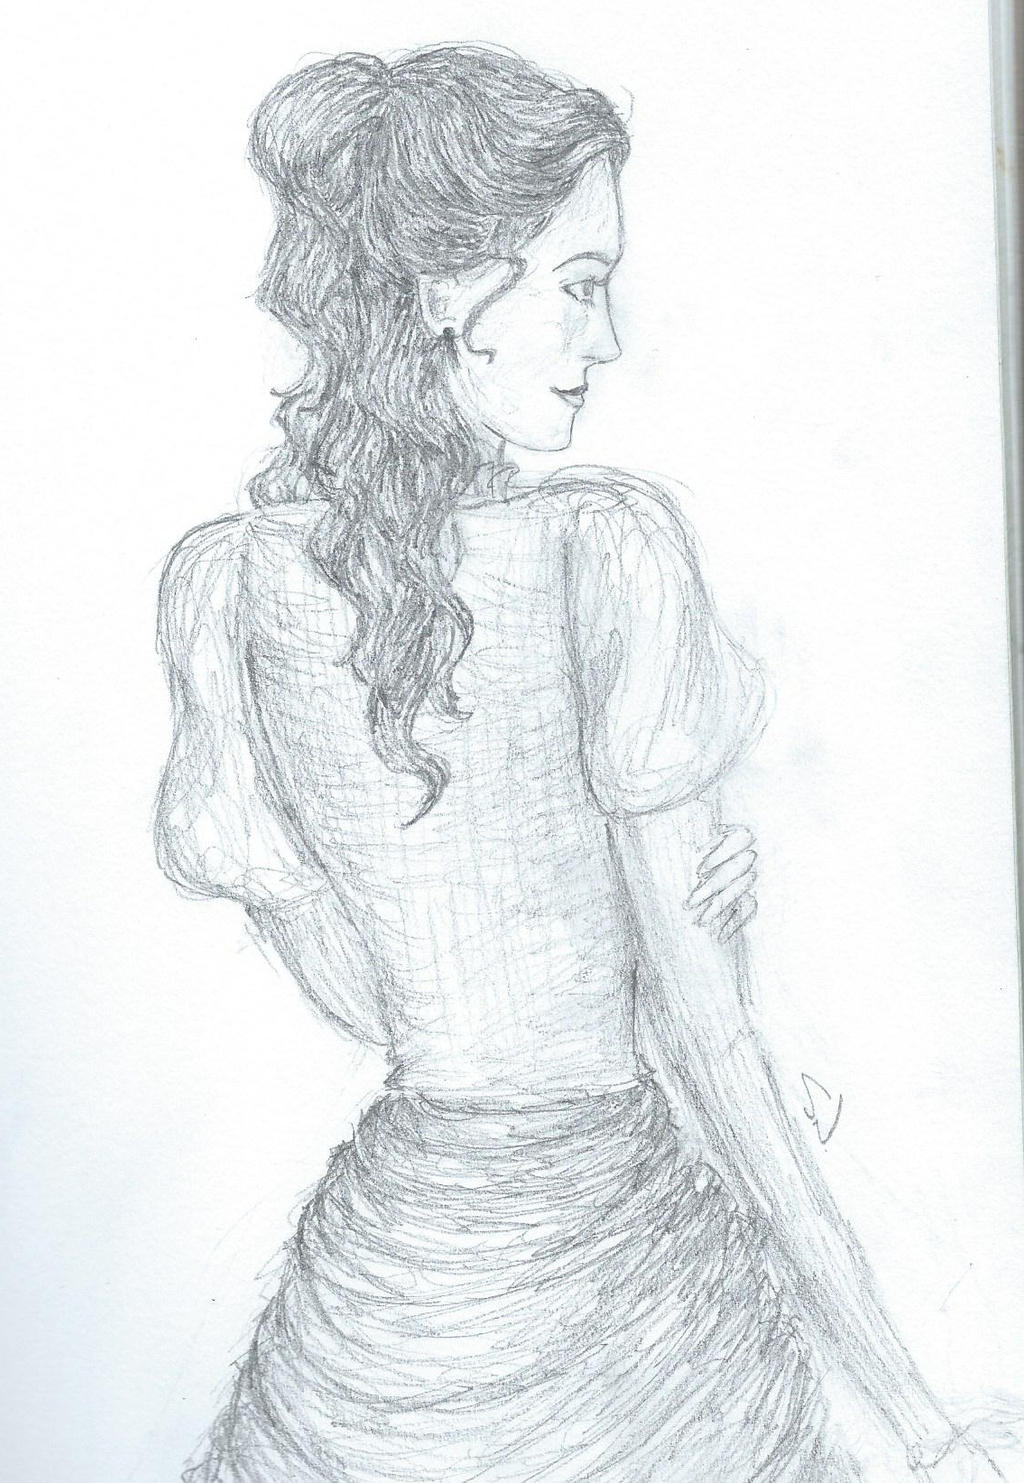 Tessa Gray by Eyedowno on DeviantArt